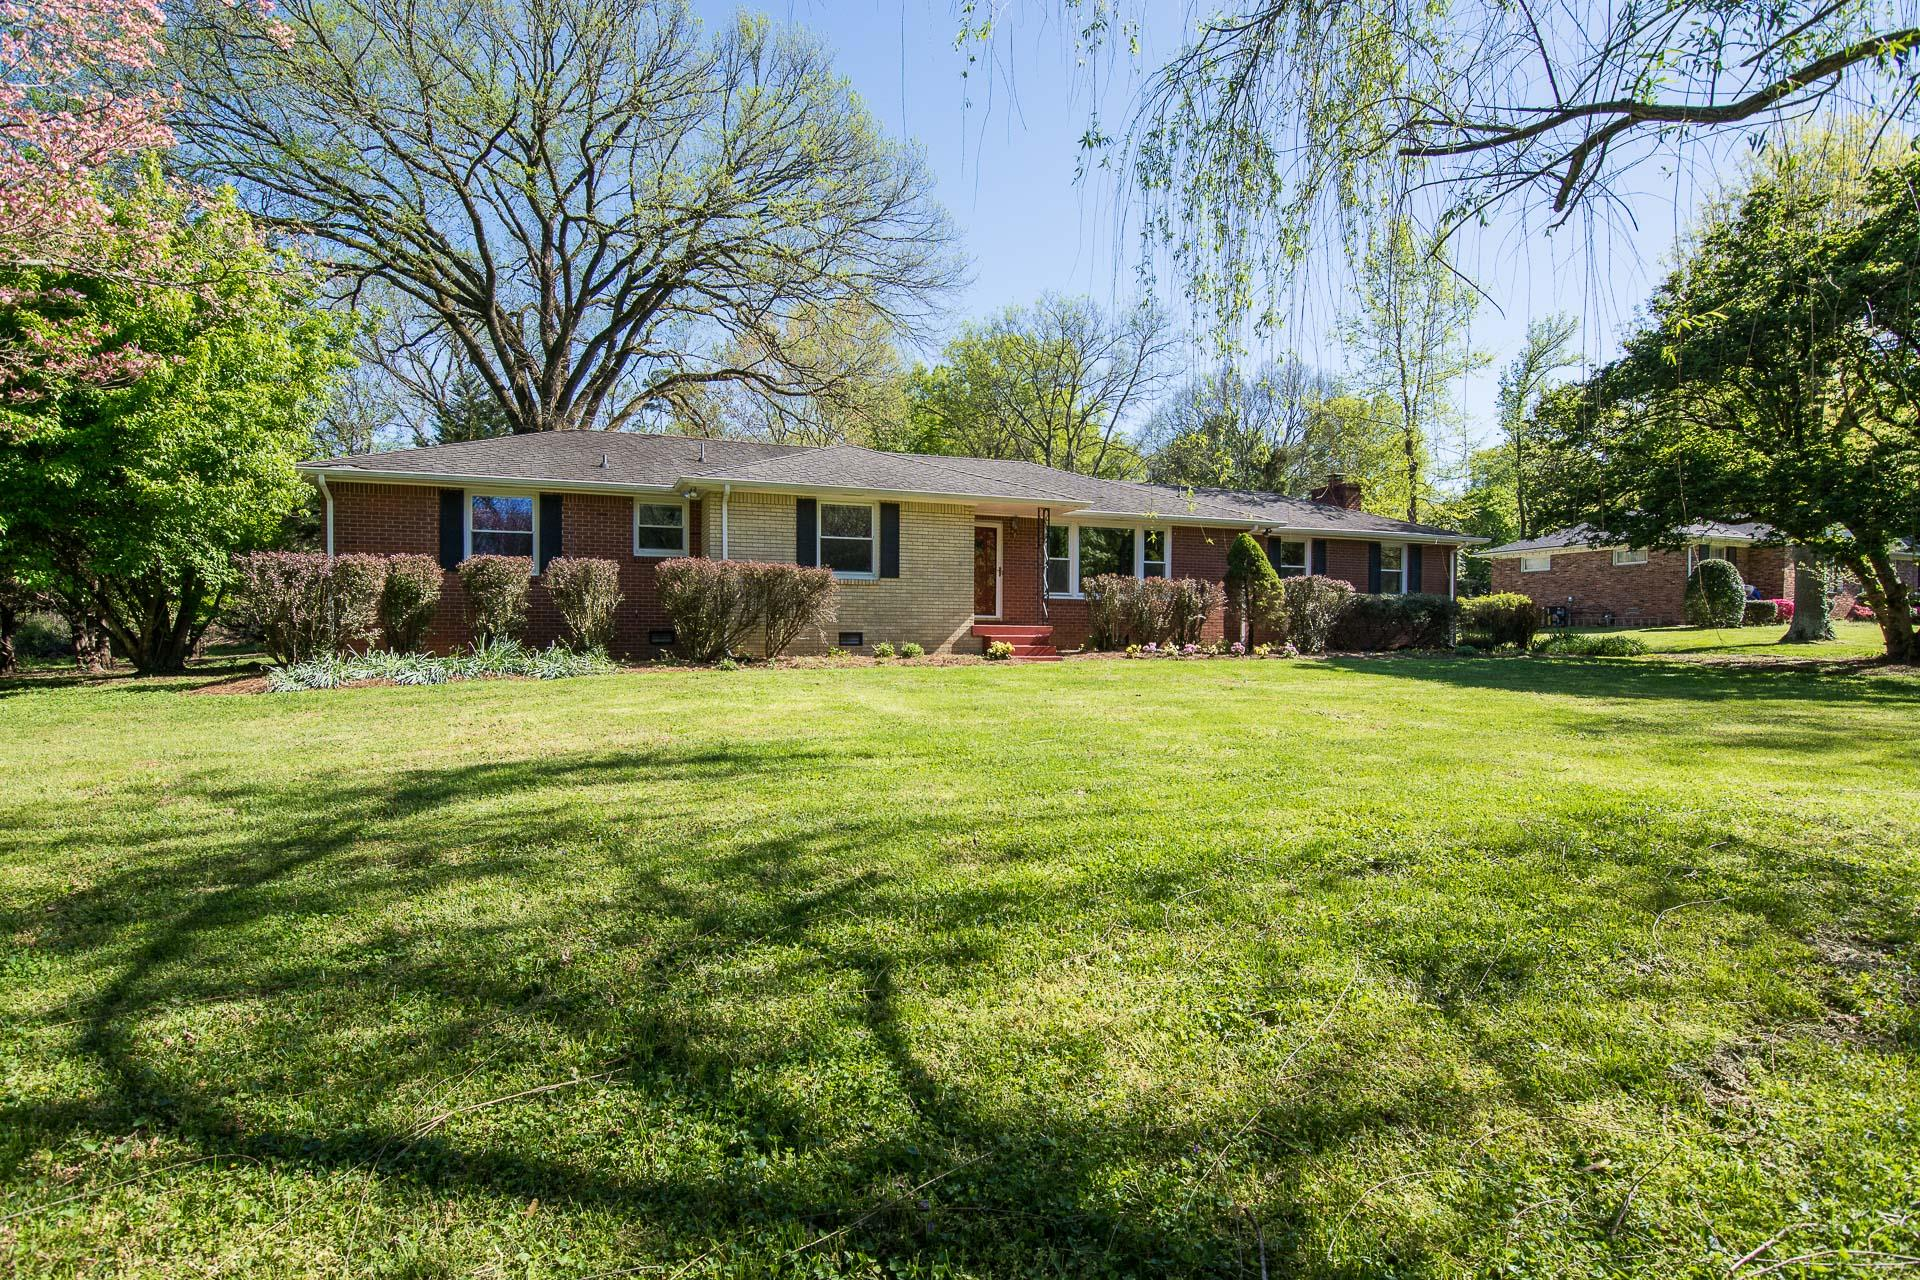 705 Farrell Rd, Crieve Hill, Tennessee 4 Bedroom as one of Homes & Land Real Estate